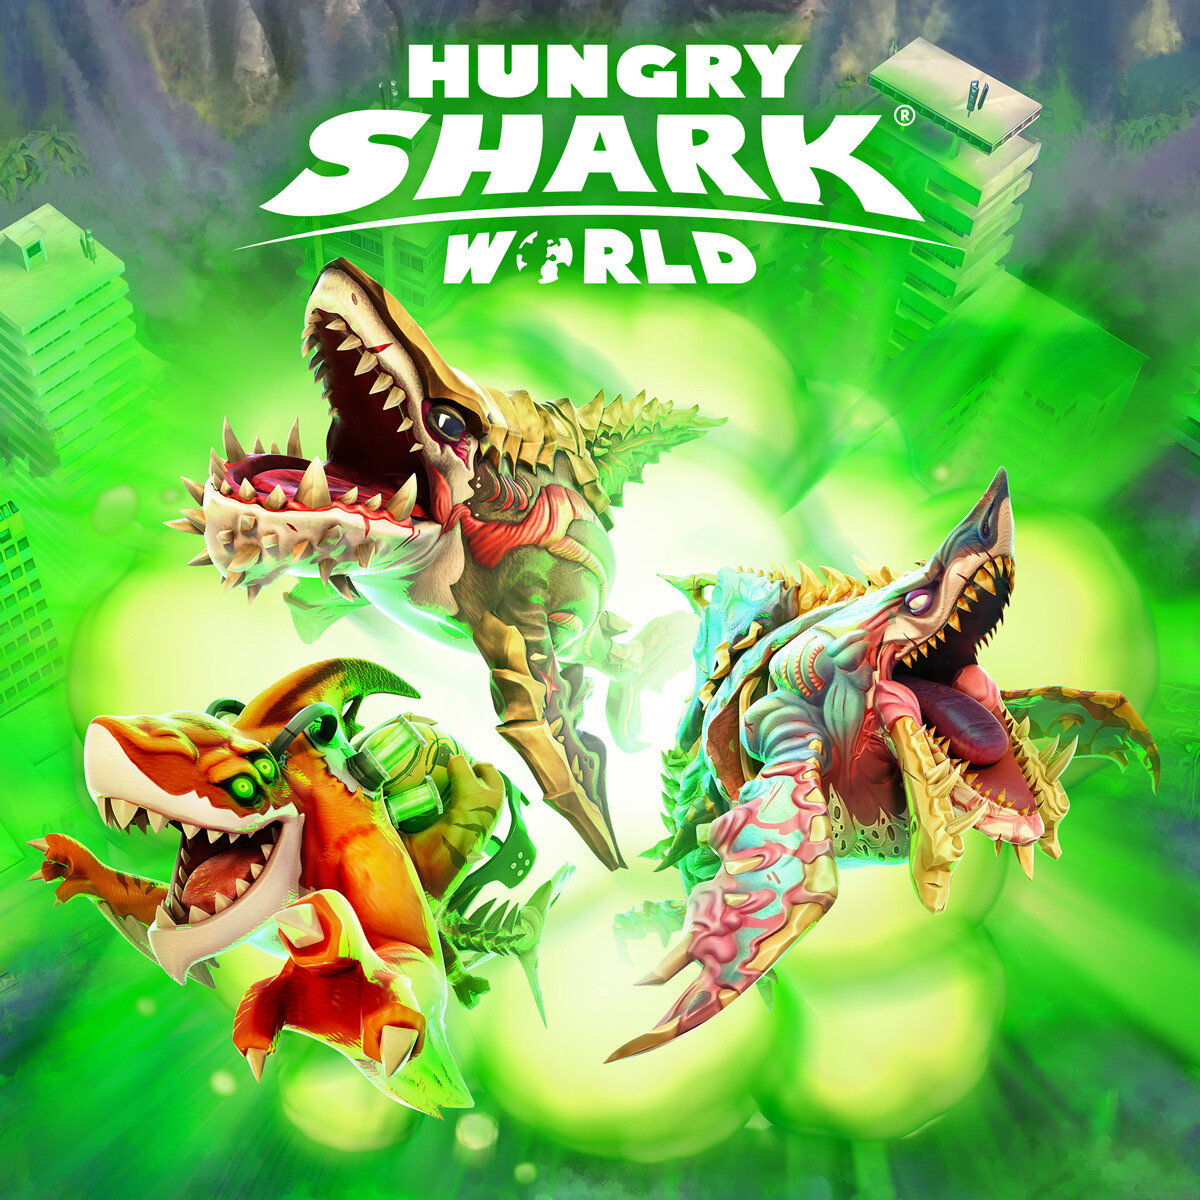 Hungry Shark World keyarts